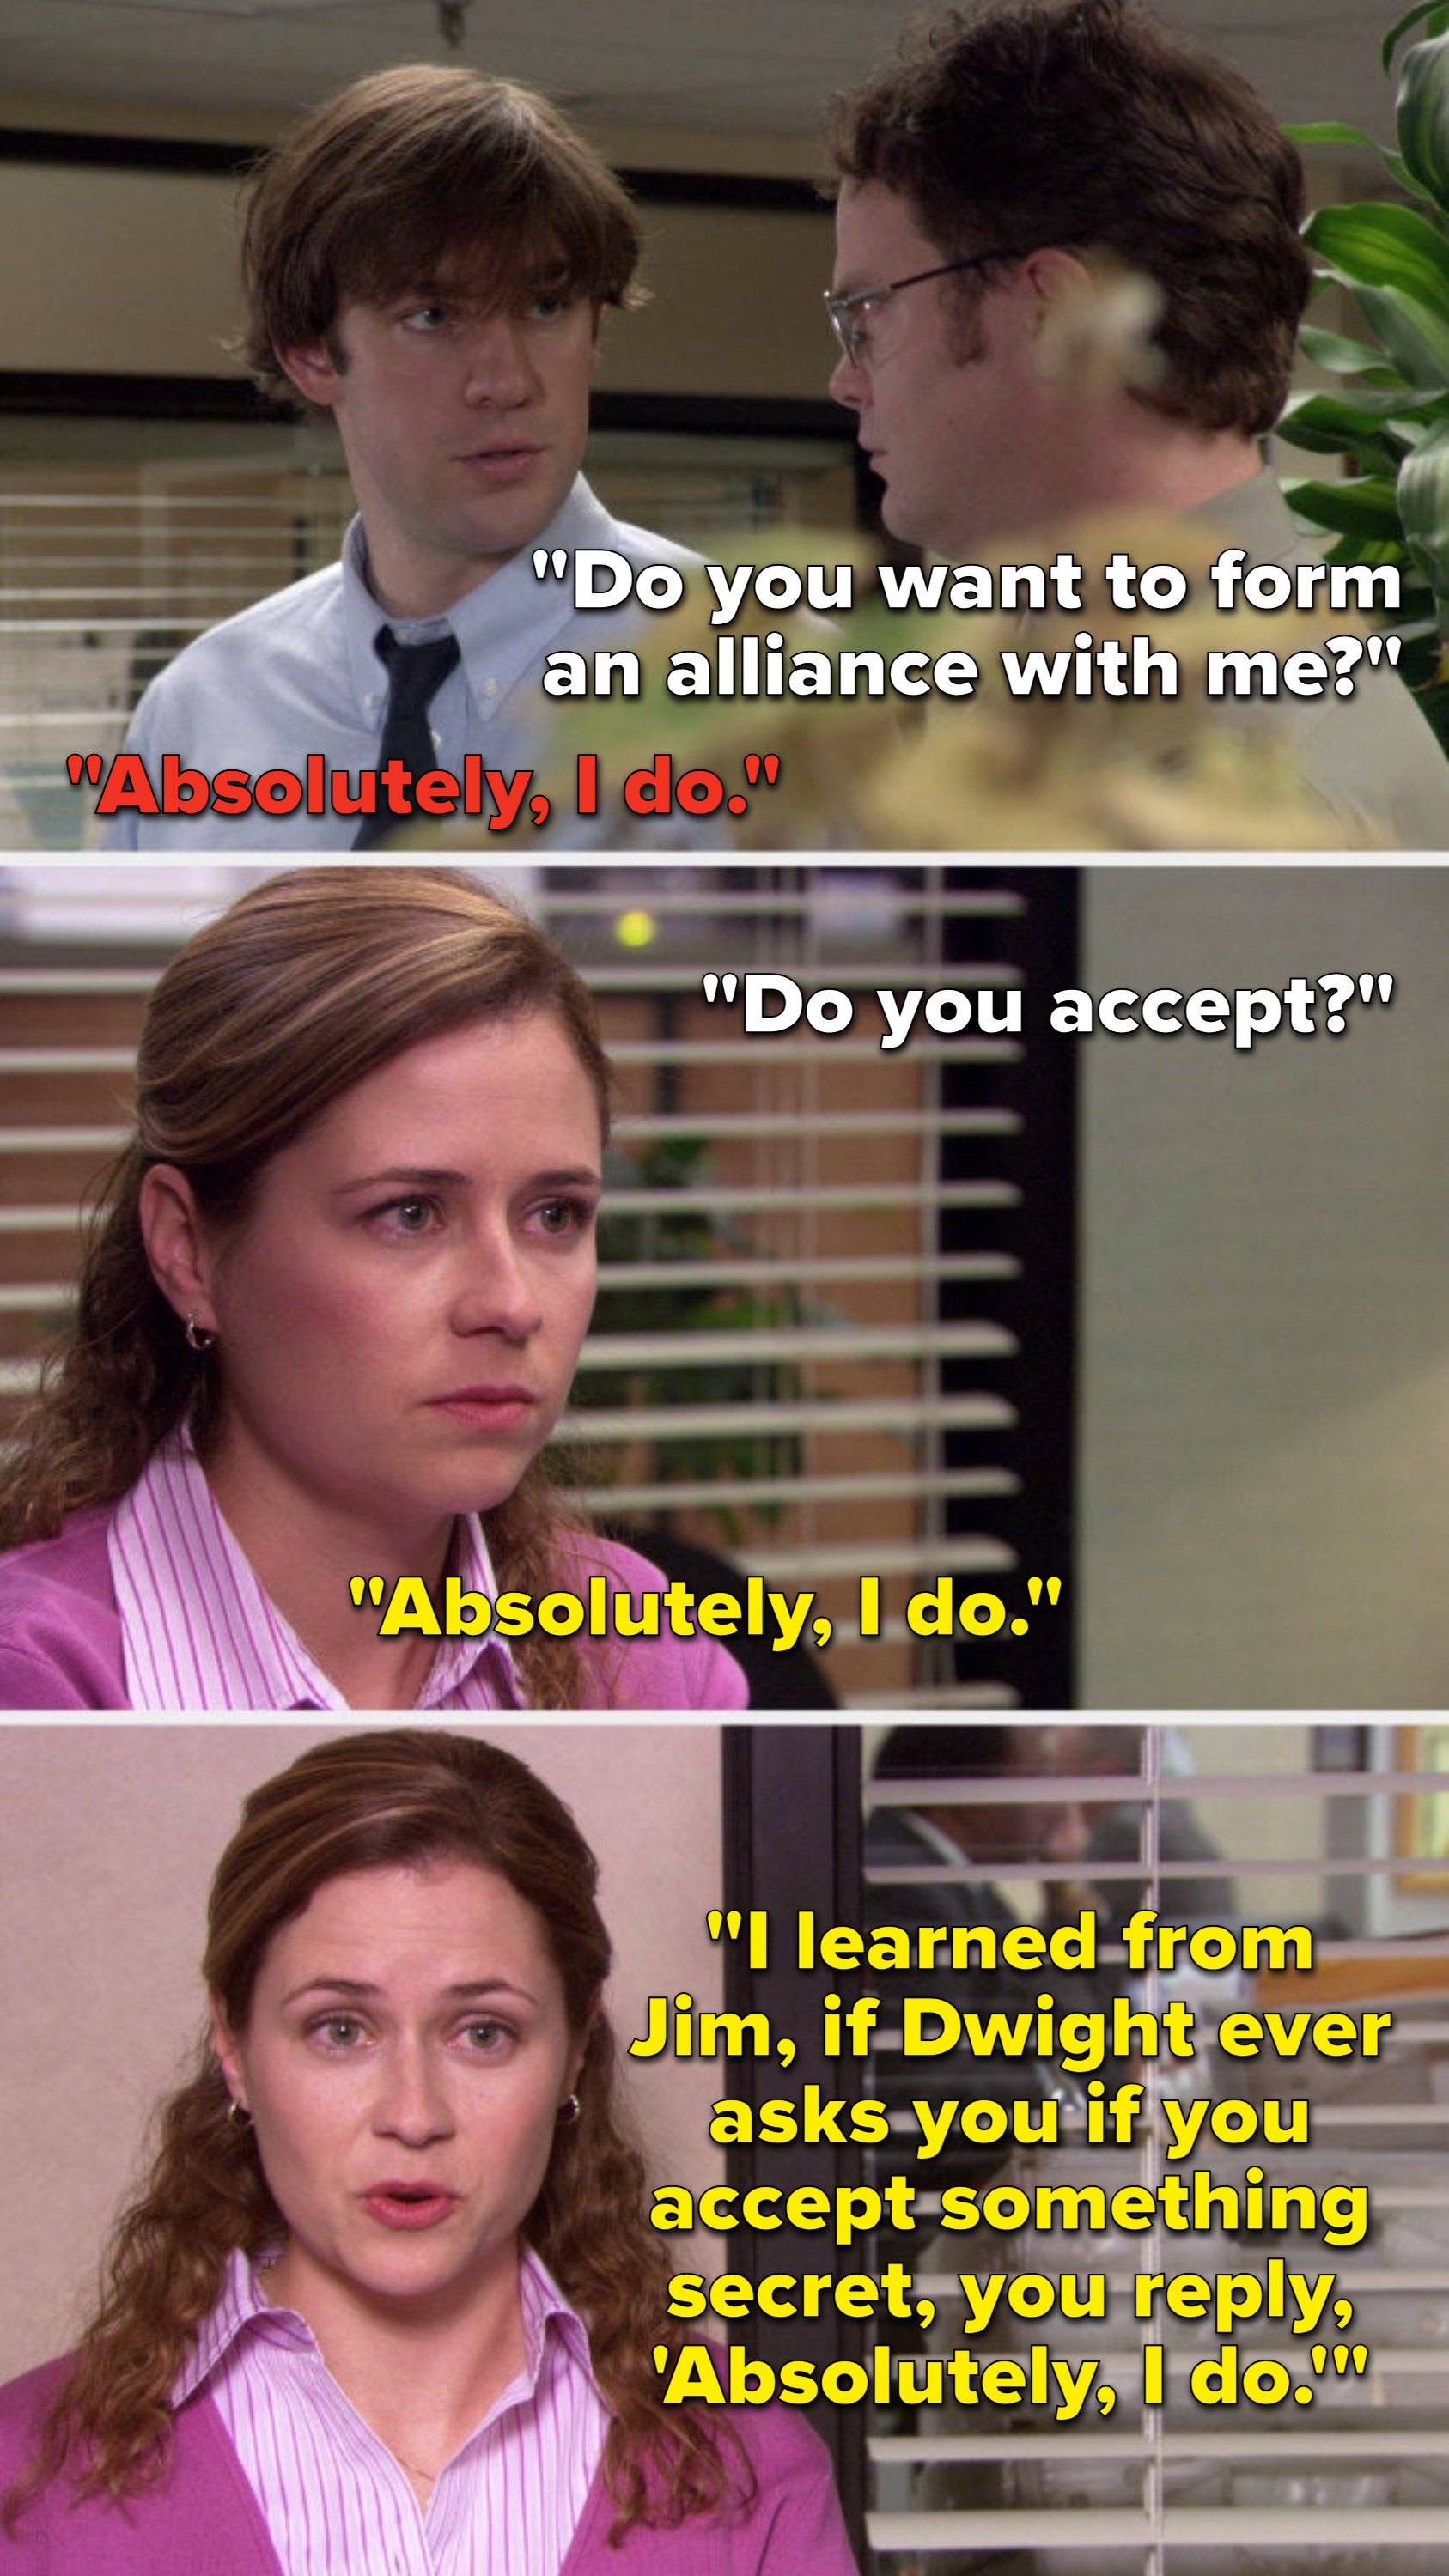 """Dwight says, """"Do you want to form an alliance with me,"""" Jim says, """"Absolutely I do,"""" seasons later Dwight Pam says, """"I learned from Jim, if Dwight ever asks you if you accept something secret, you reply, 'Absolutely I do'"""""""